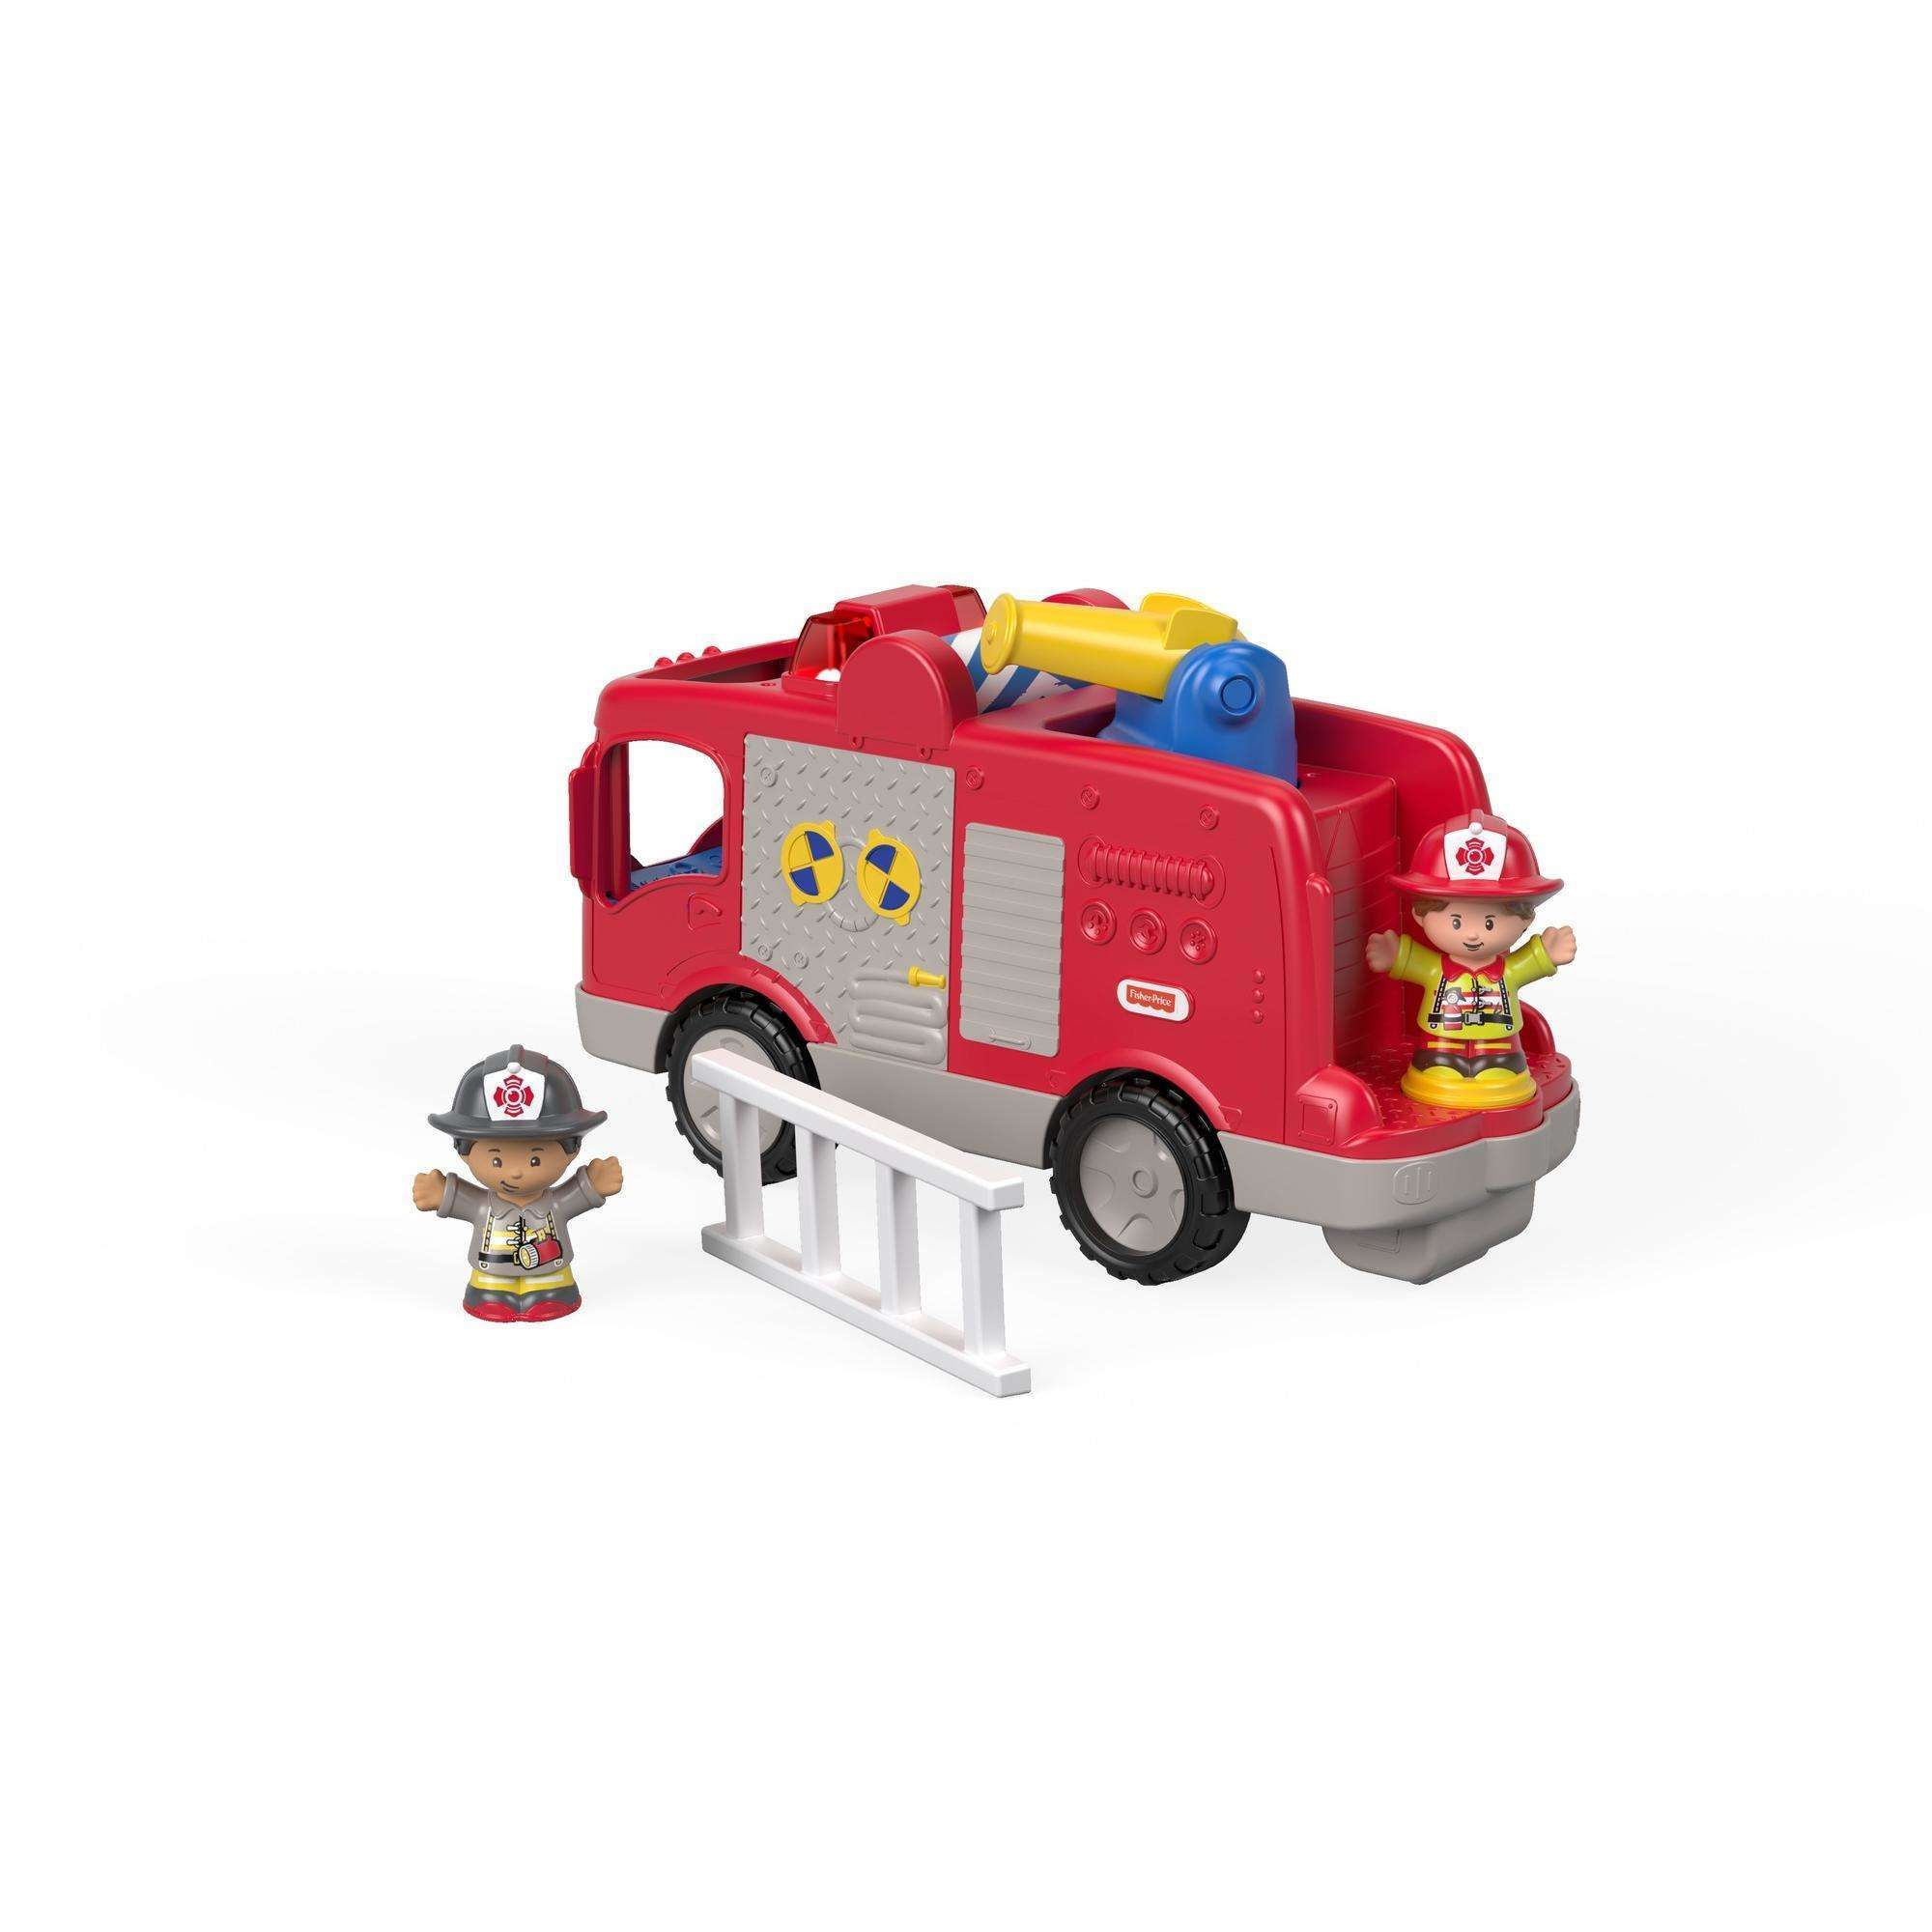 Little People Helping Others Fire Truck with Sounds, Songs